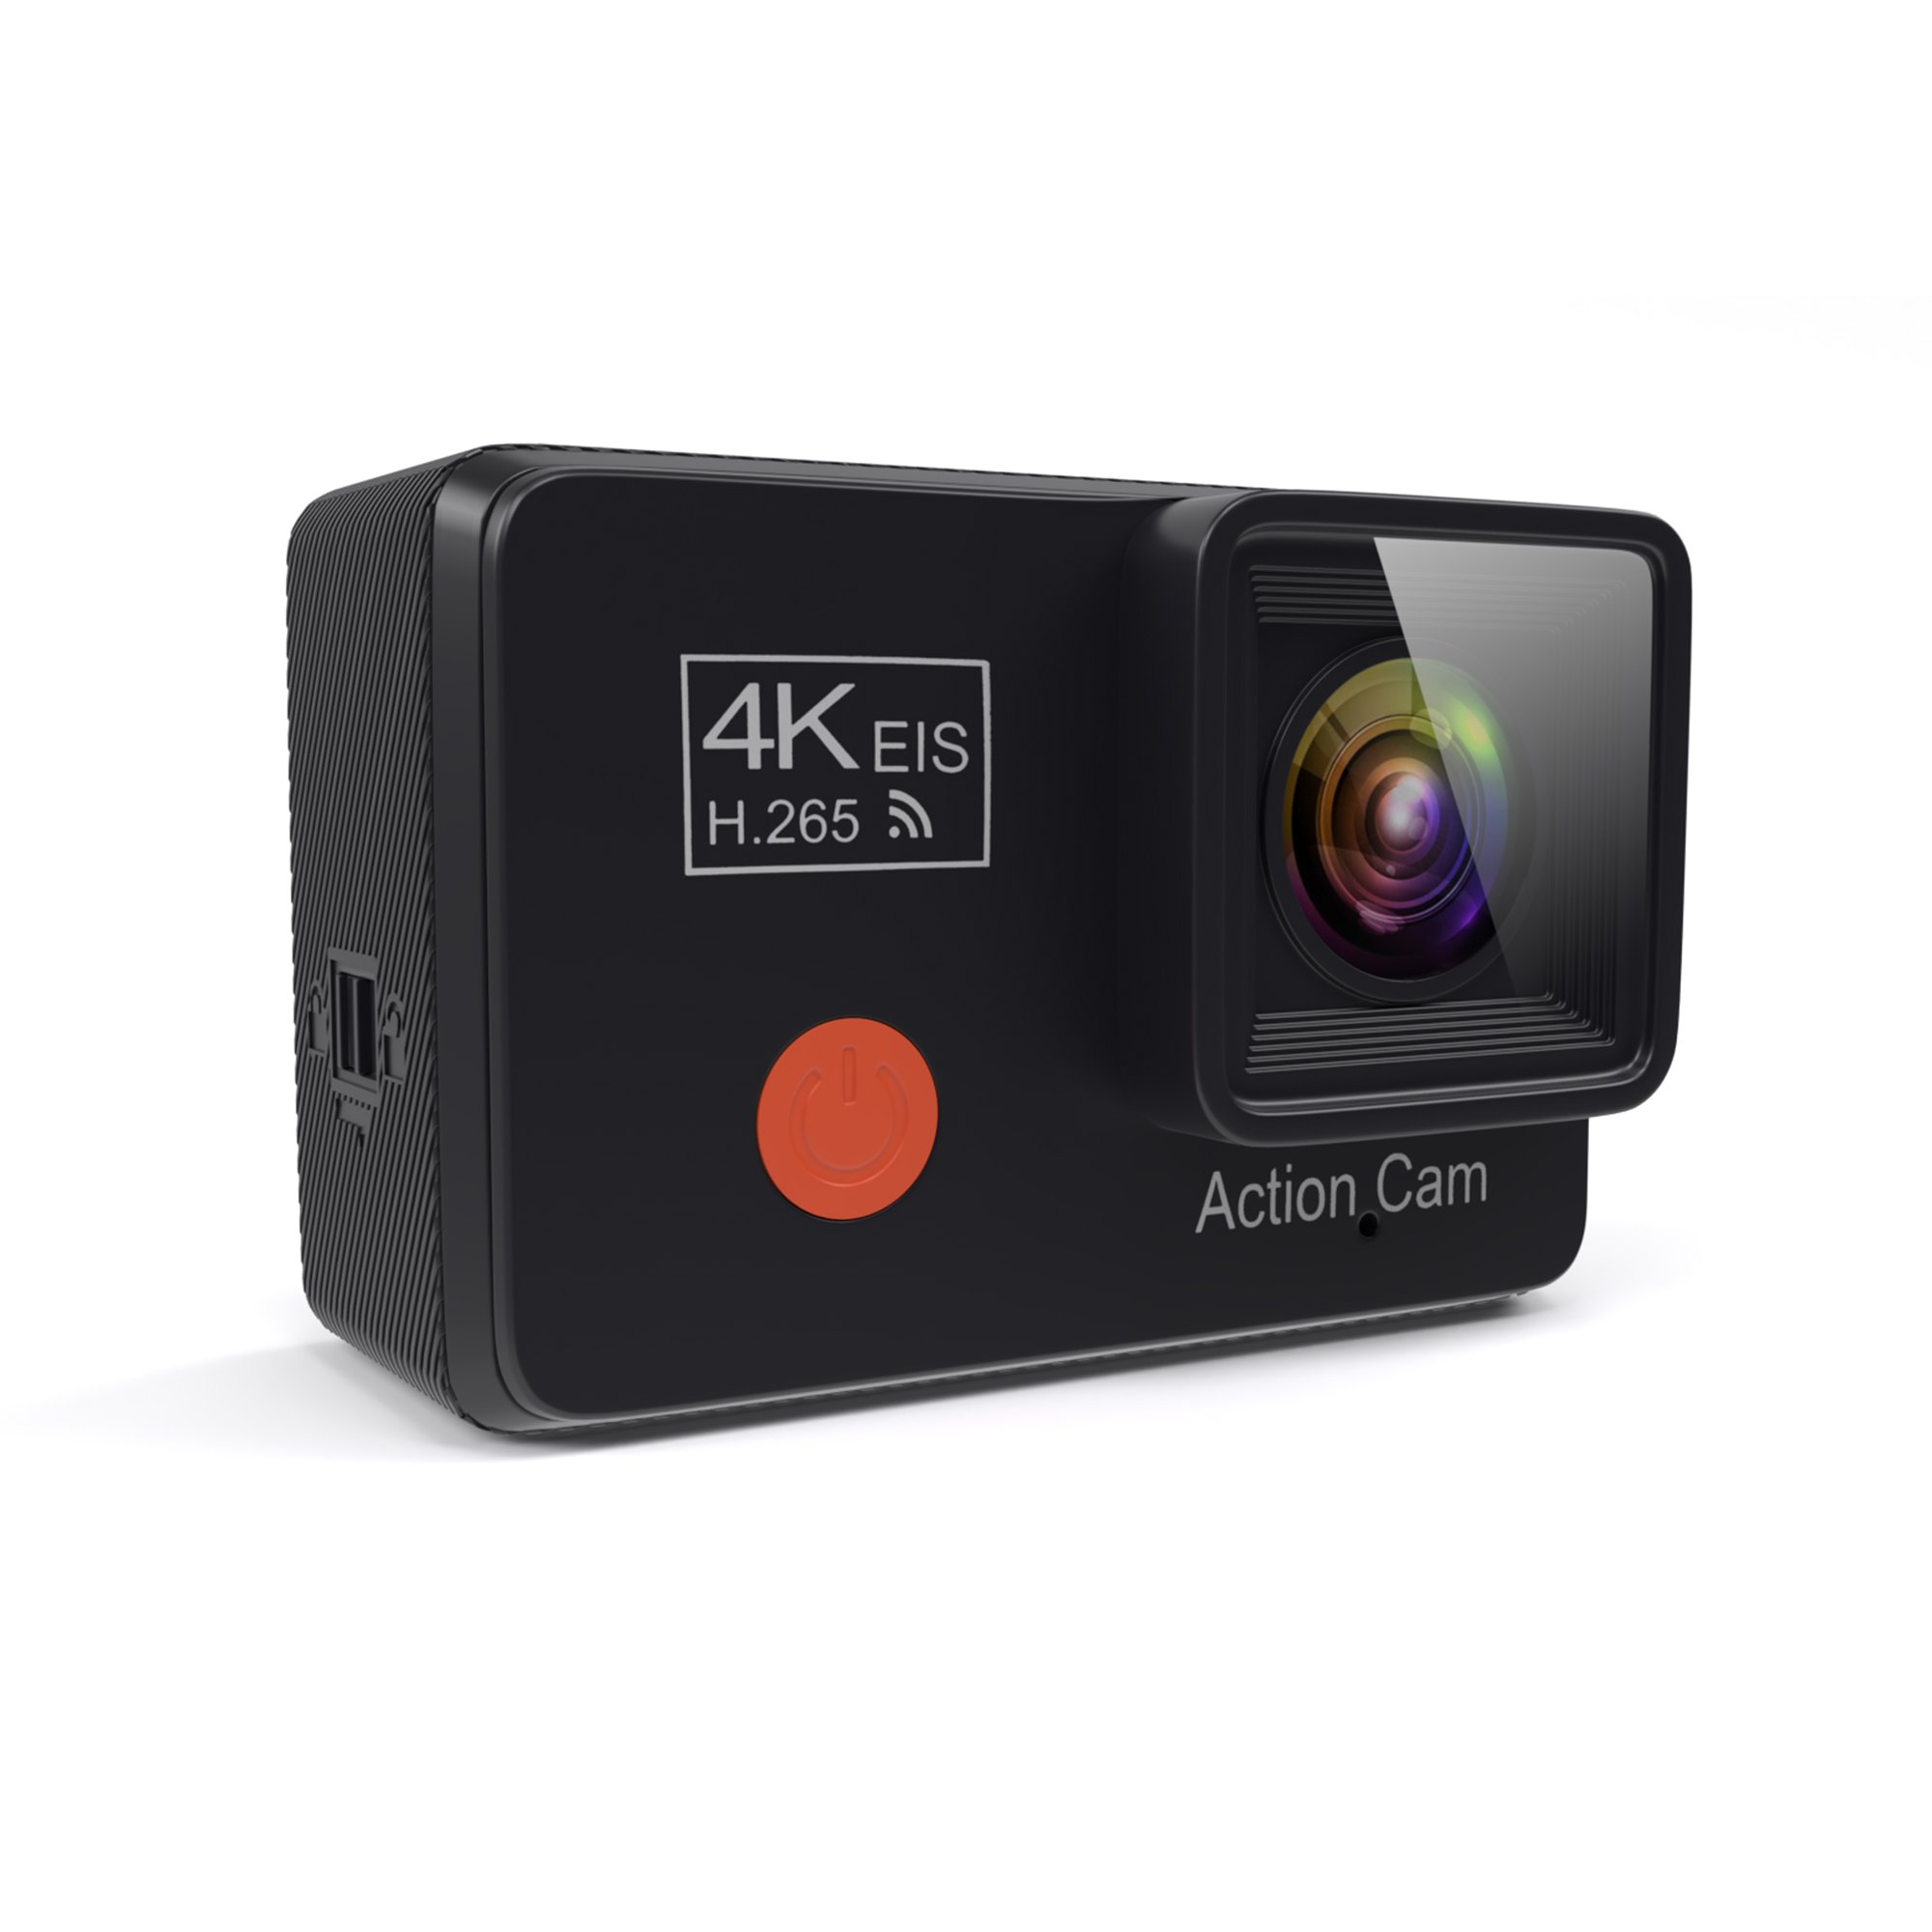 PRUVUE PV53 4K Action Camera 12MP SONY HD Image, 4K/30fps Resolution, Hi3559 Chipsets, 2.0'' LCD Touchscreen, Waterproof, EIS, Wi-Fi, With 2 Rechargeable Batteries, Accessories Kit, Portable Package by PRUVUE